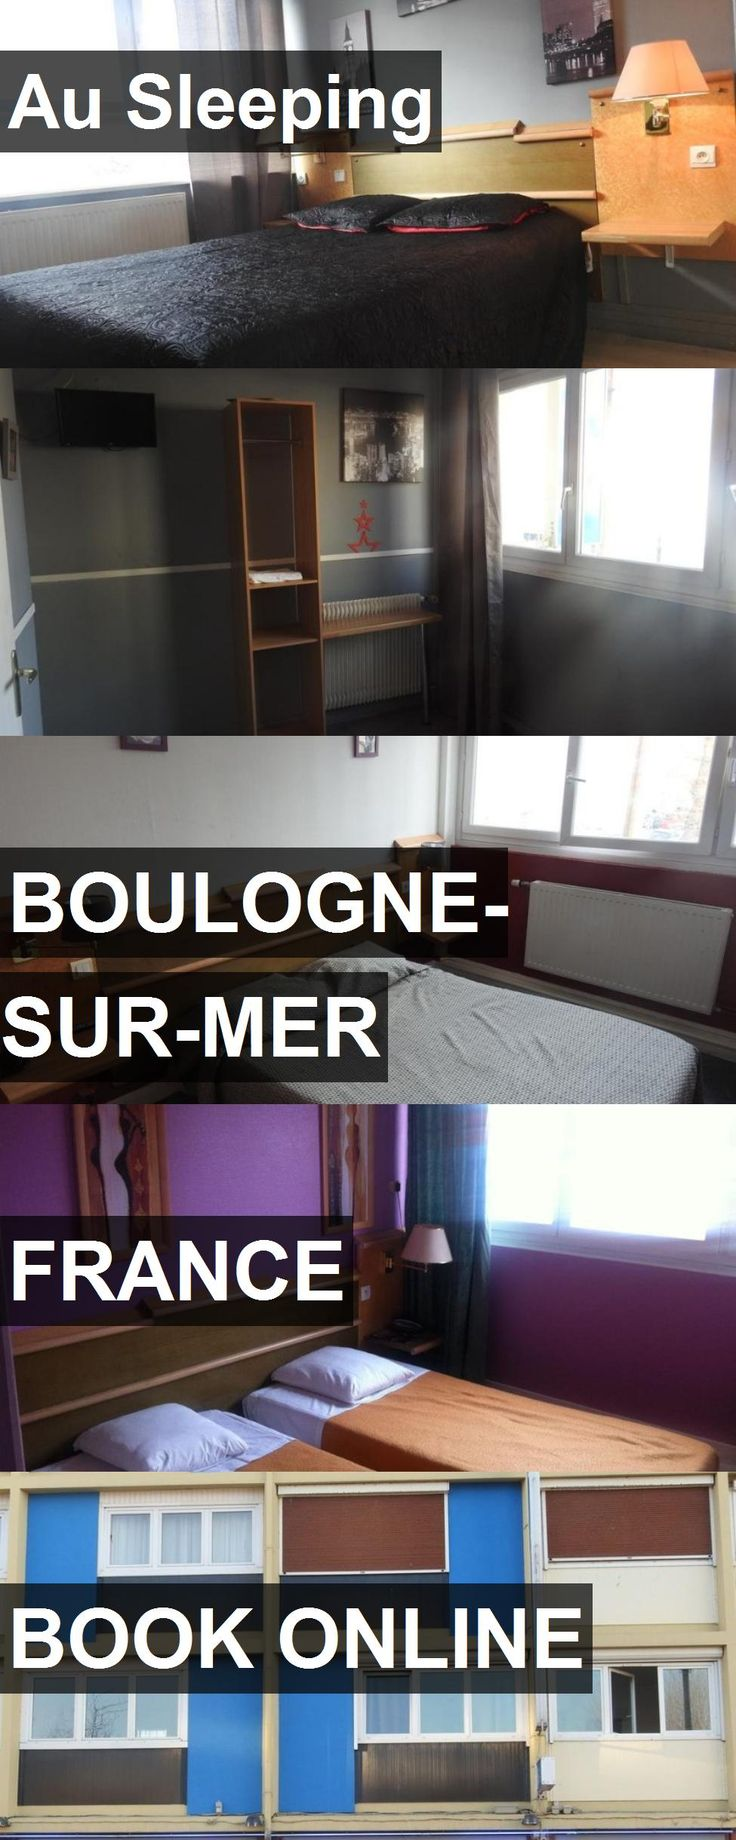 Hotel Au Sleeping In Boulogne Sur Mer France For More